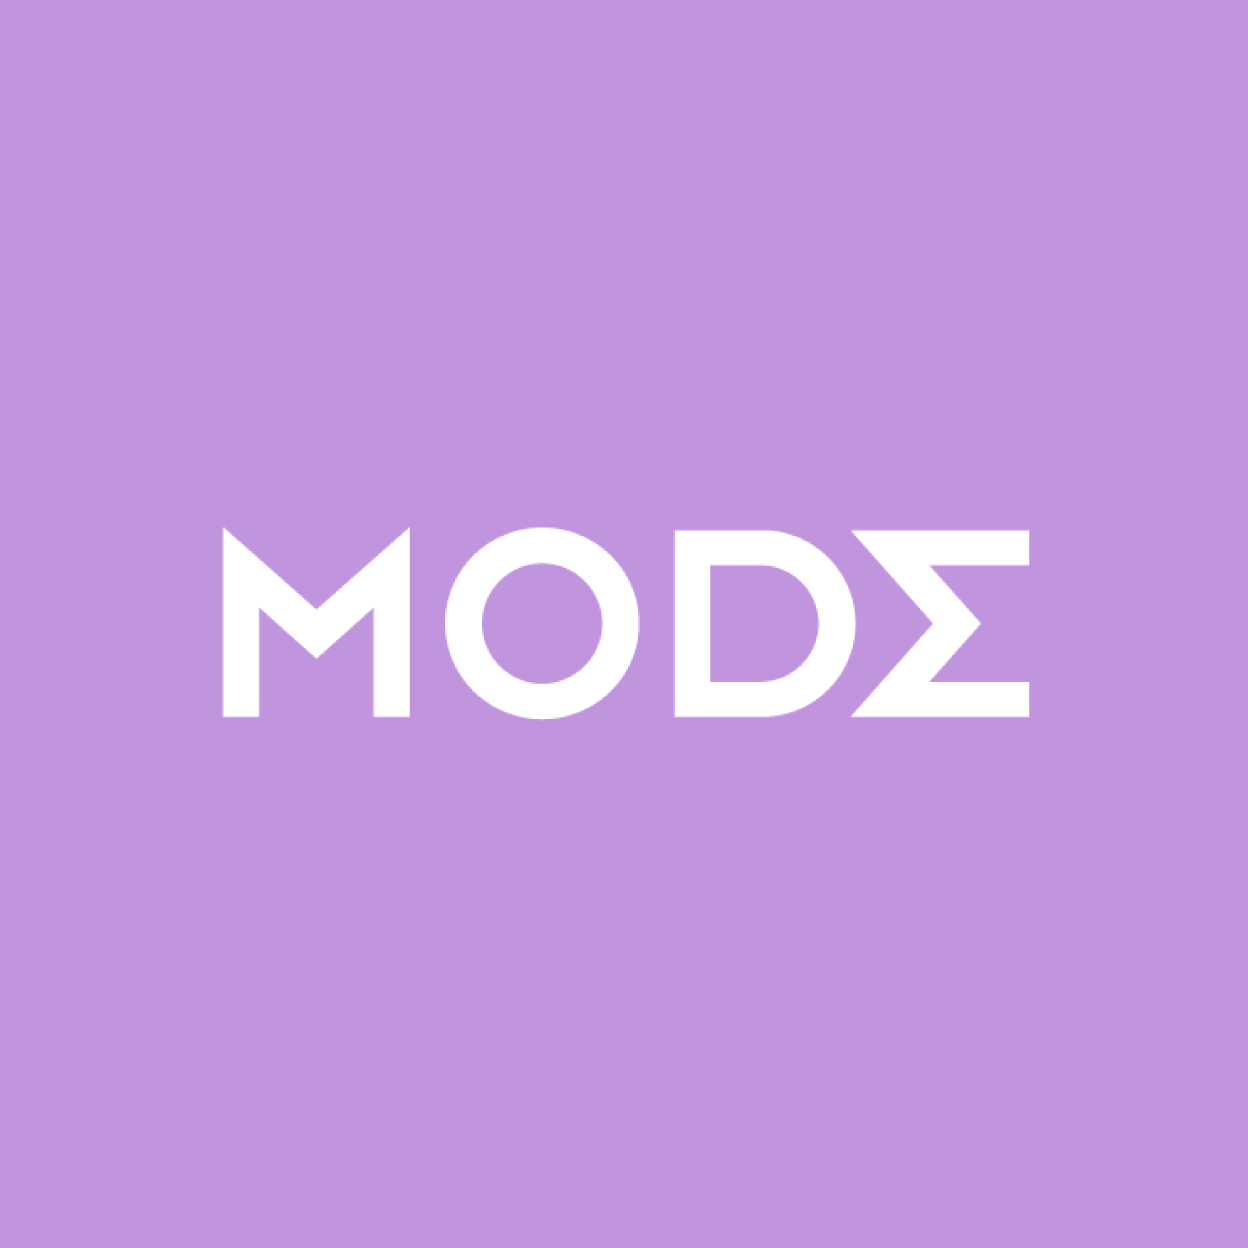 Mode Network, founded by Cornell PhD's who solved a 40 year-old math problem, offers a global carrier-grade private network that delivers MPLS reliability and QoS as an affordable, flexible cloud service.